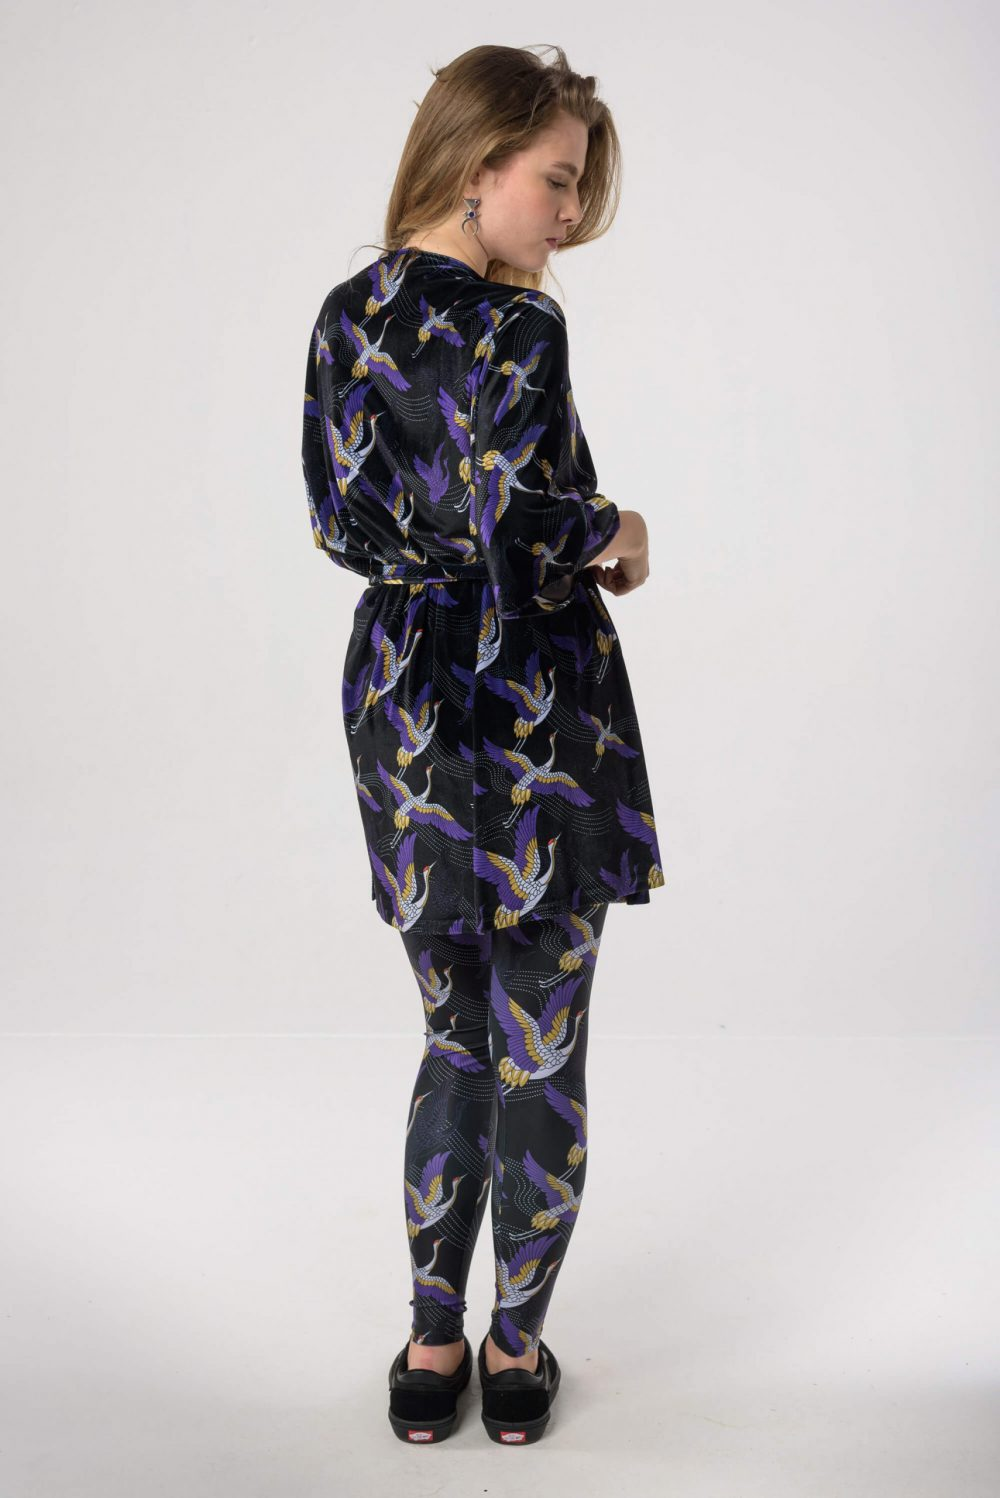 Heartbeatink Japanese Black N Purple Velvet Wrap Dress Leggings